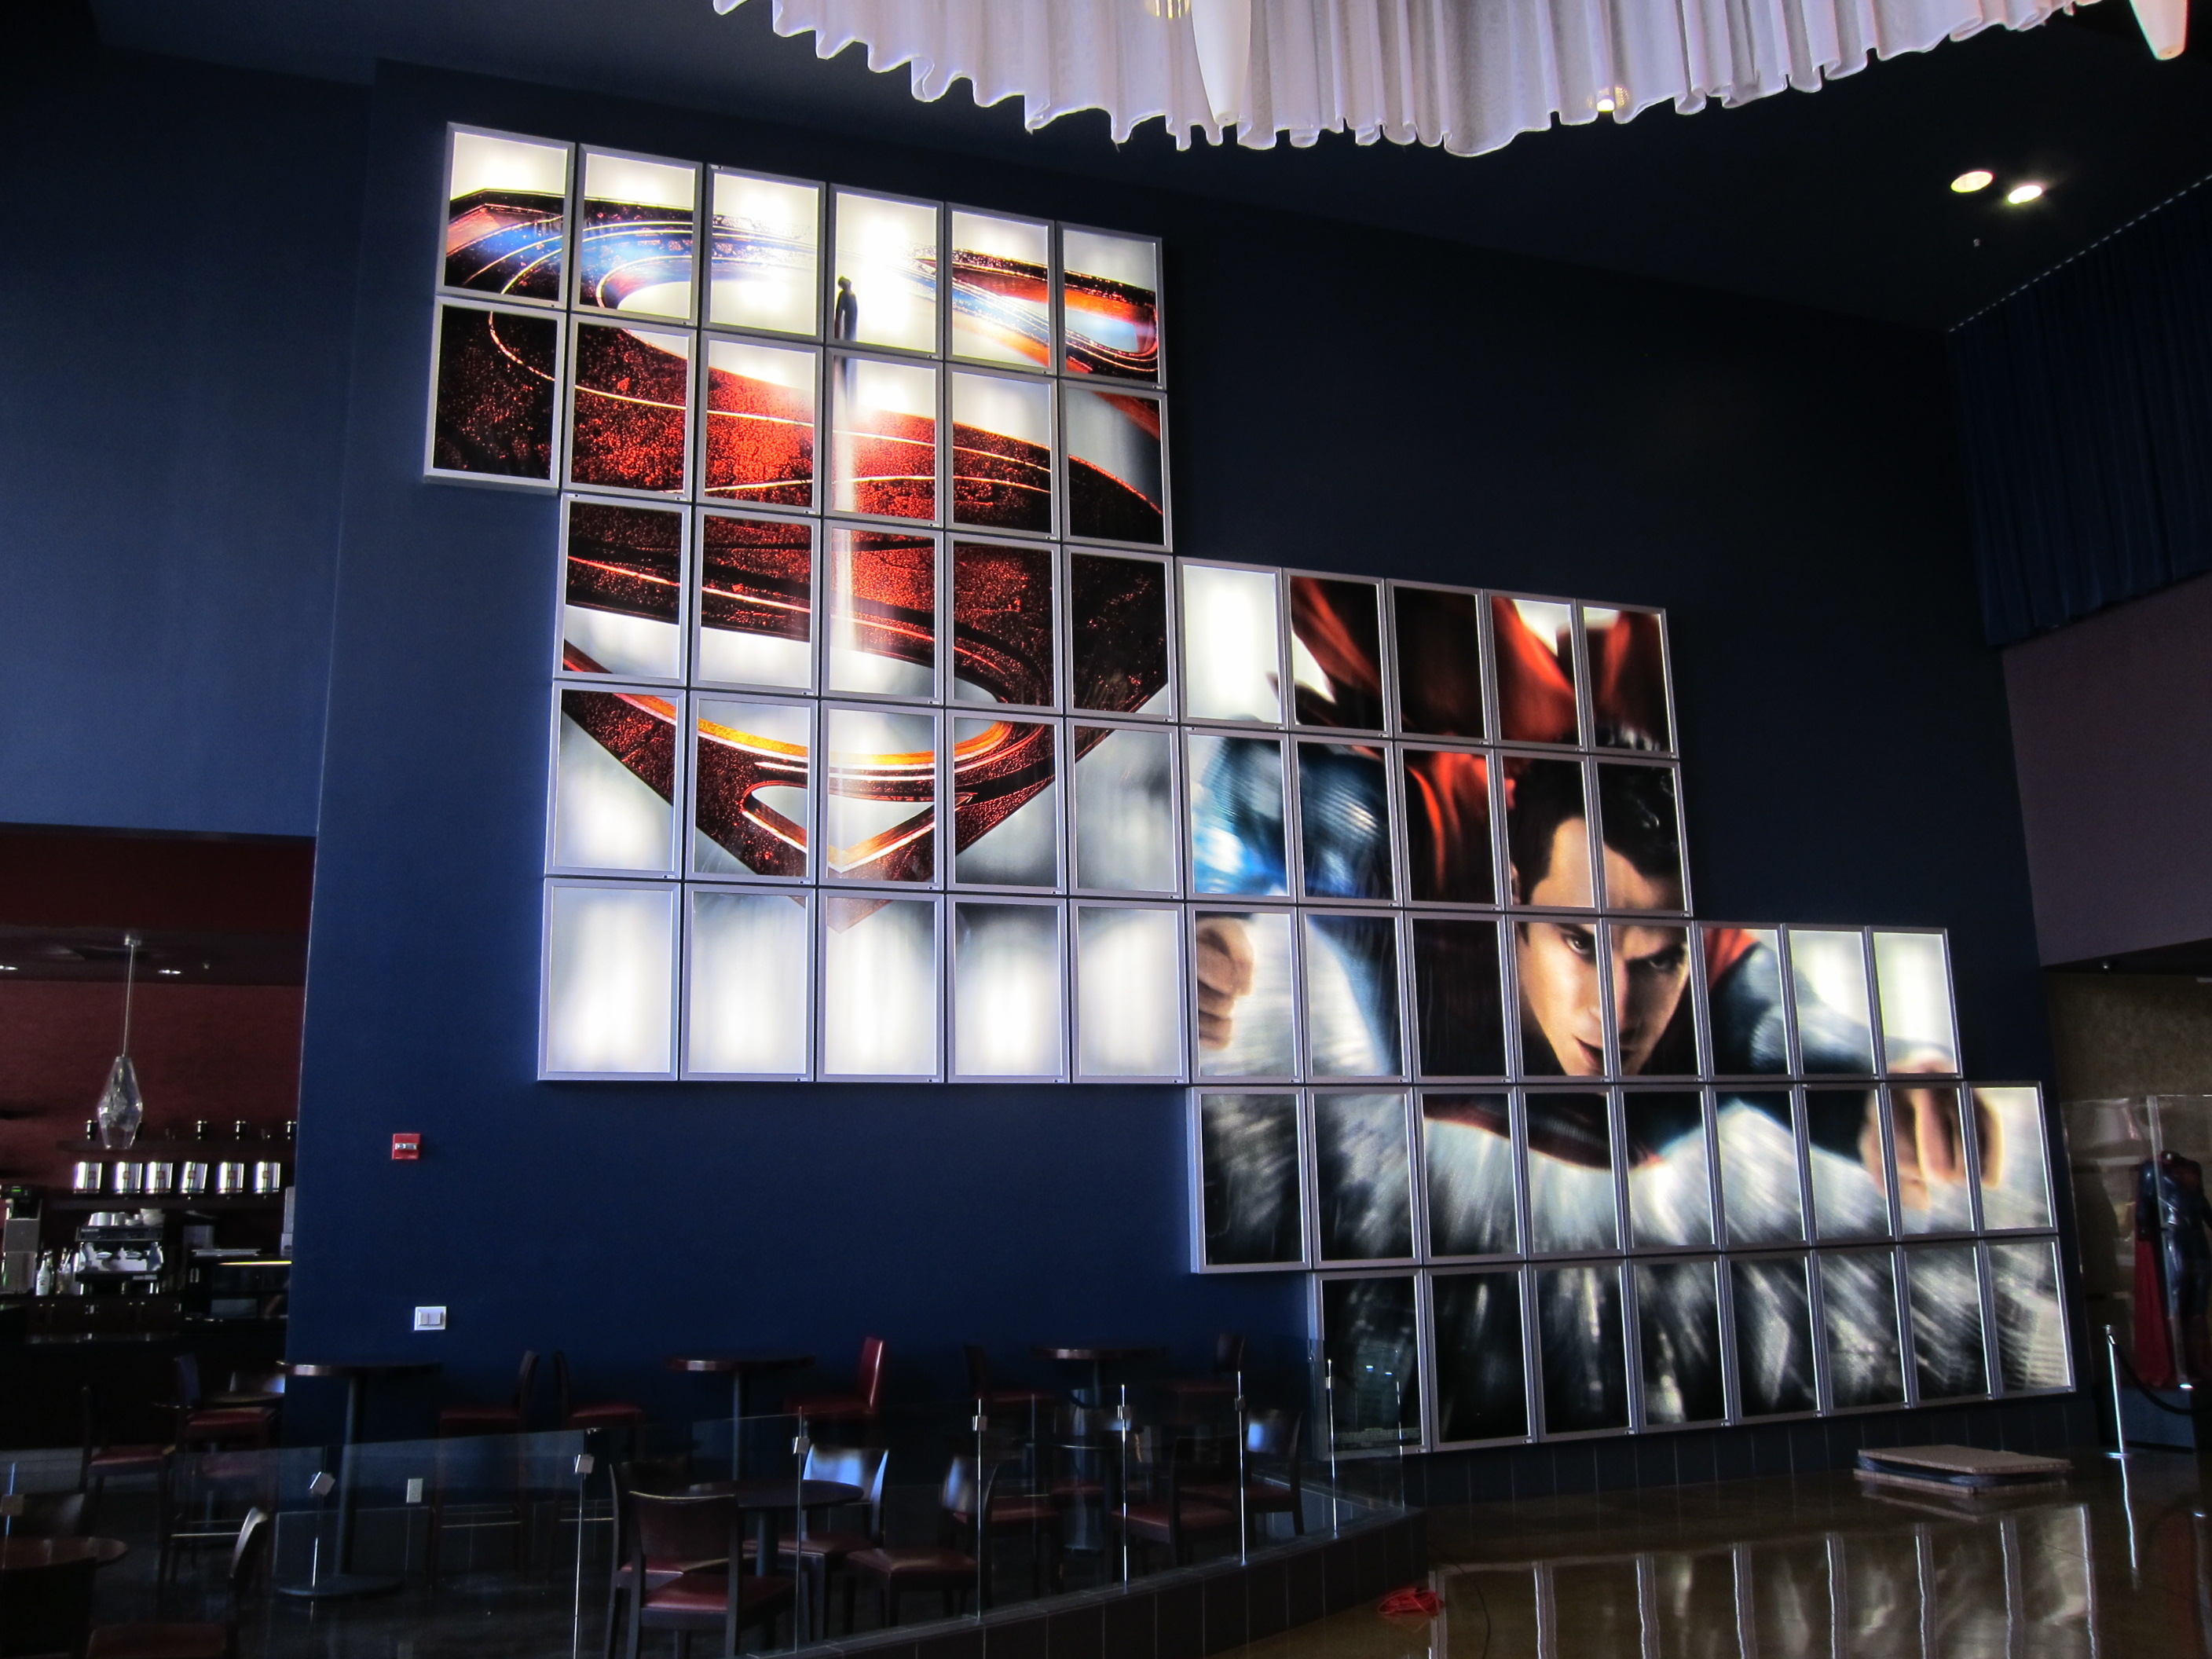 MAN OF STEEL giant backlit wall display at the ArcLight Pasadena.